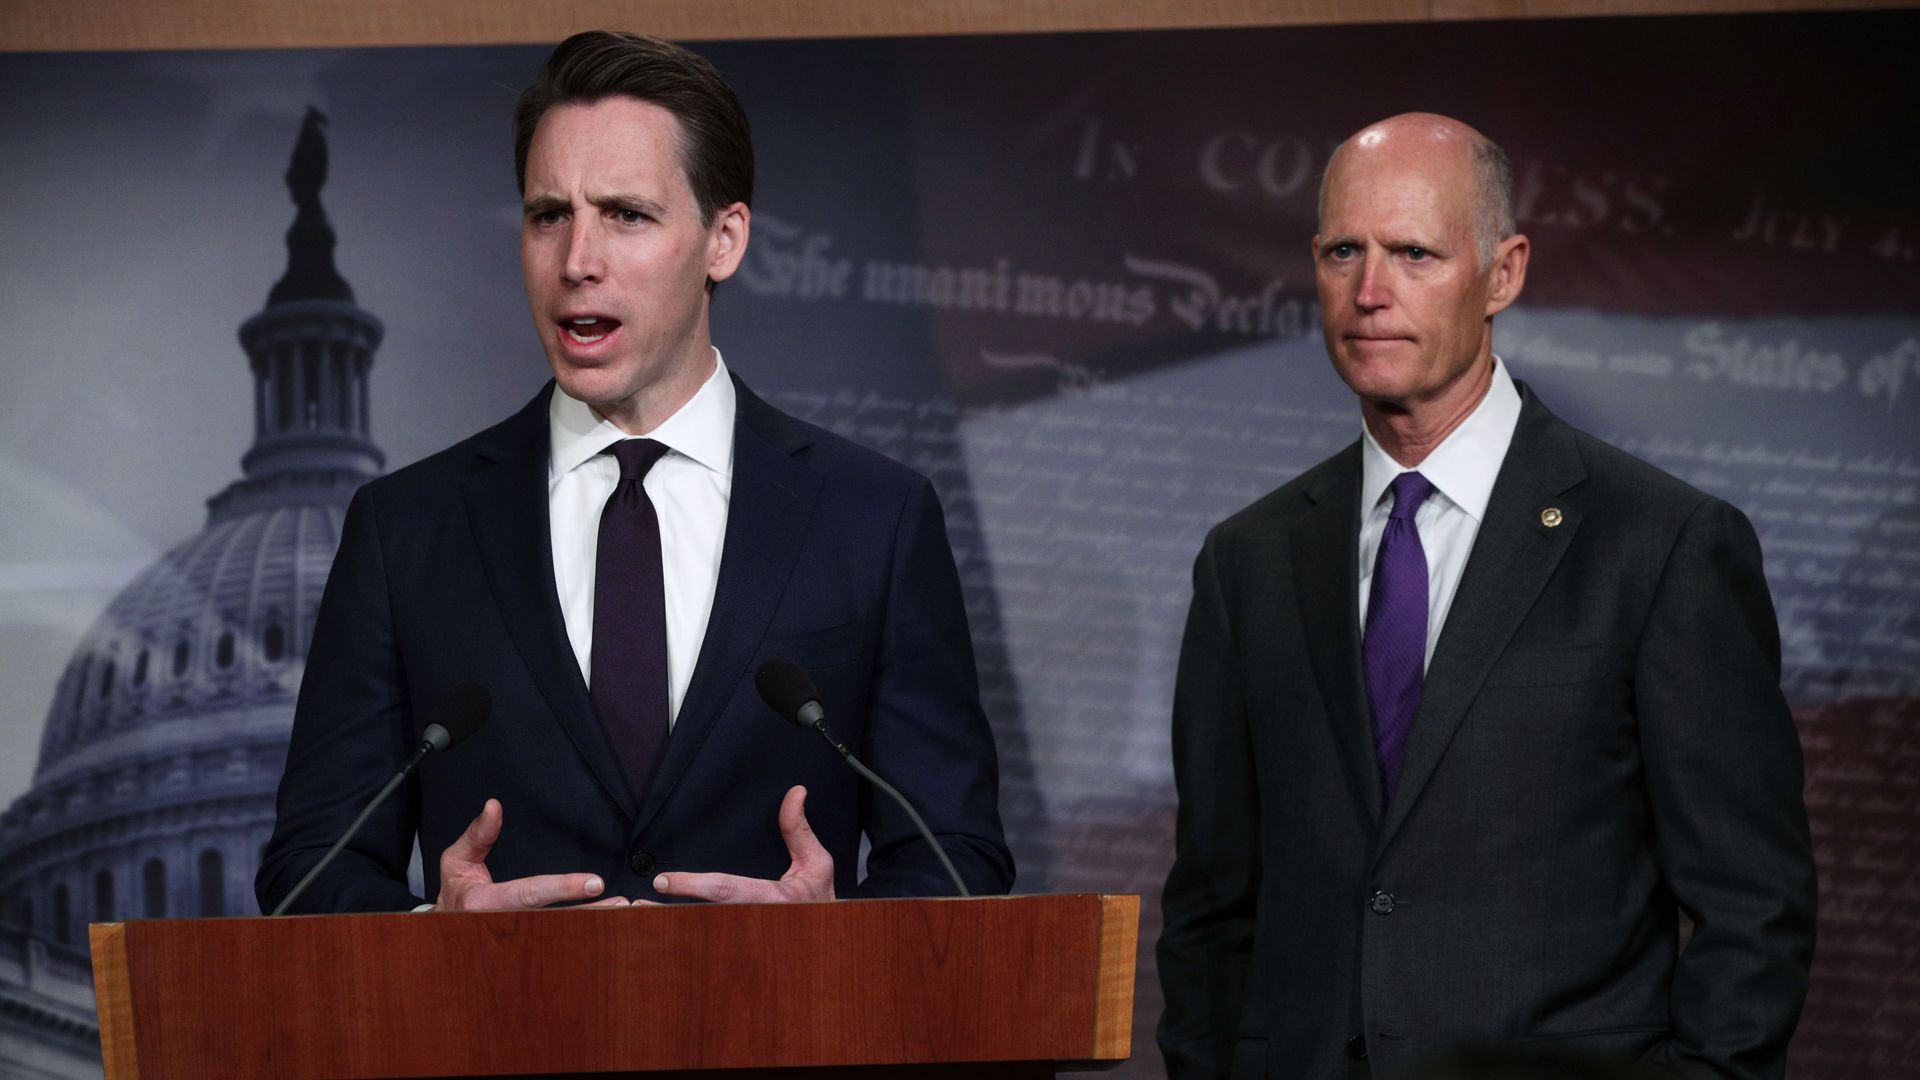 U.S. Sen. Josh Hawley speaks from behind a podium as Sen. Rick Scott stands next to him and listens.